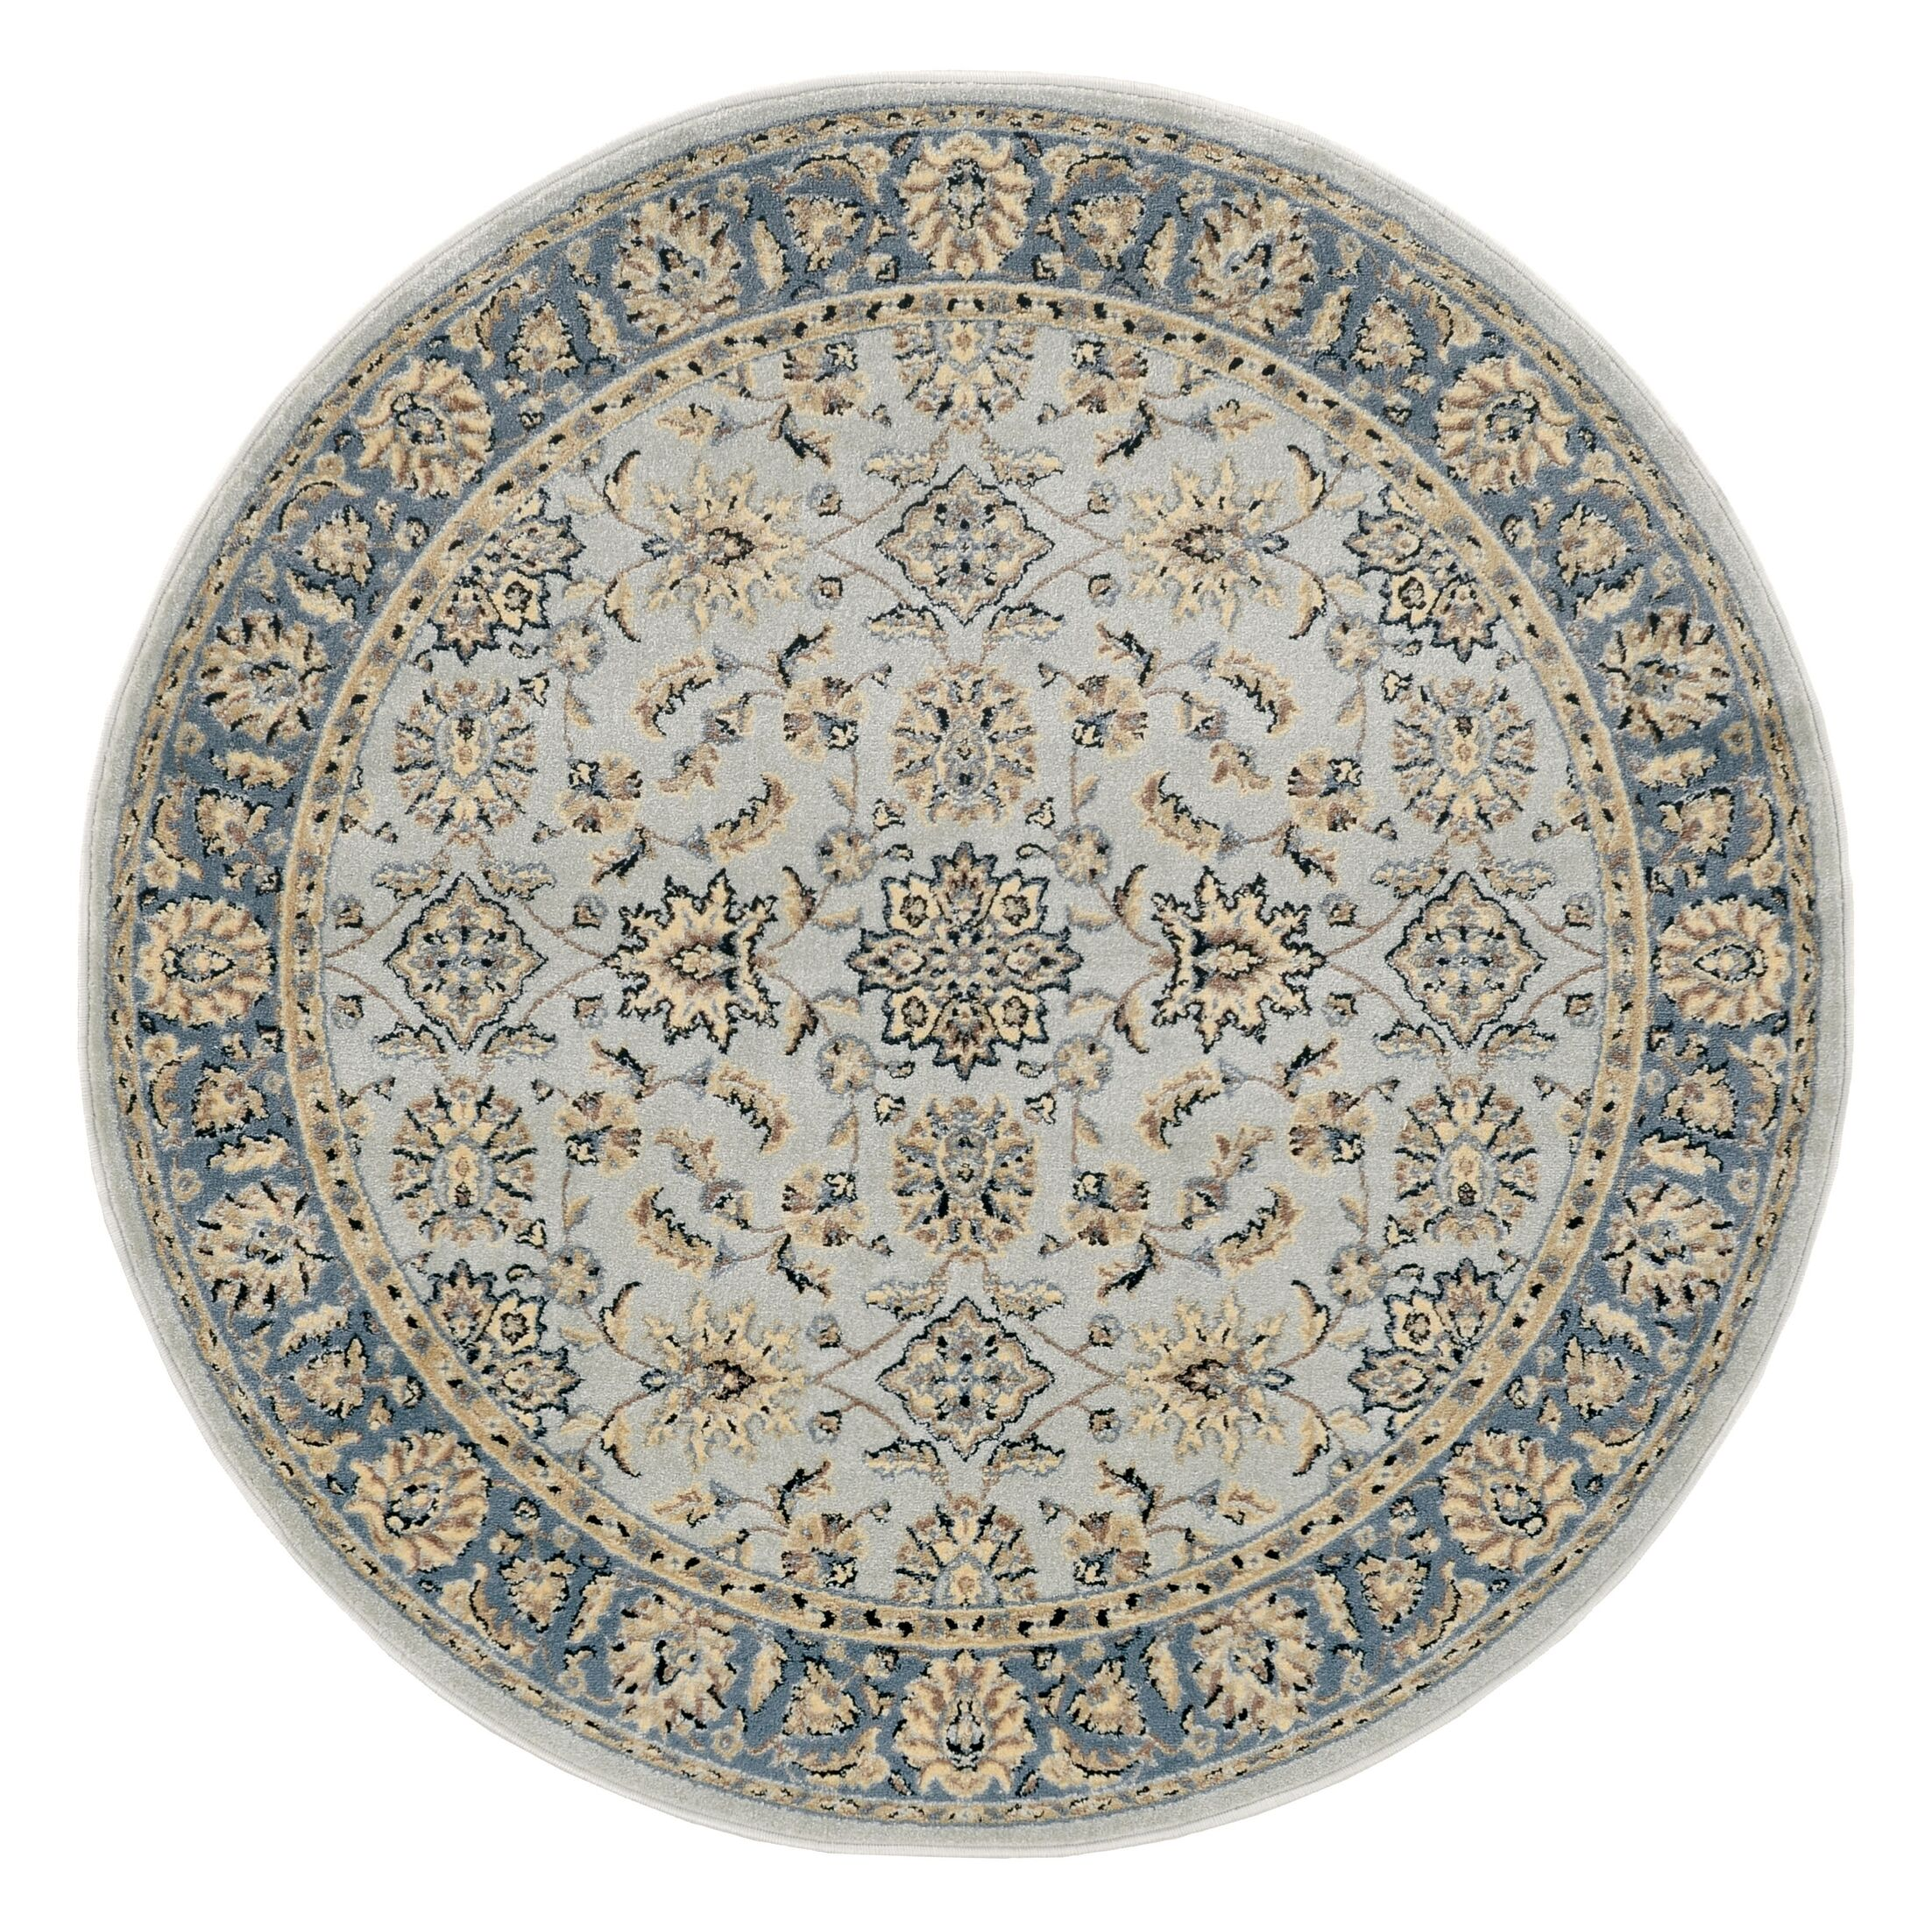 Softmint Green Area Rug Rug Size: Round 5'3